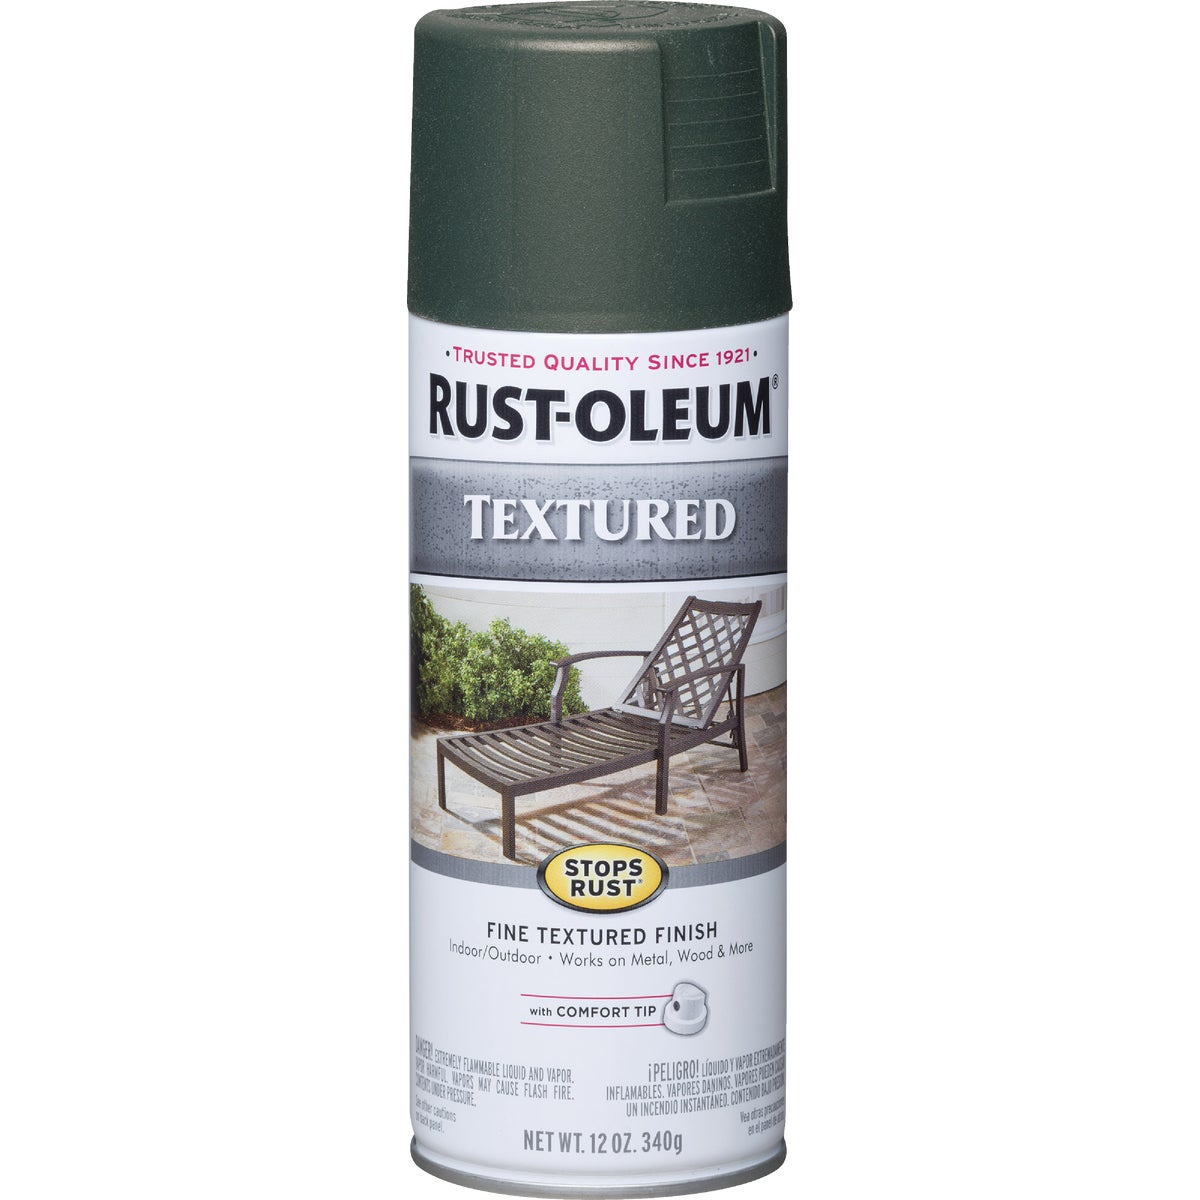 FOR GRN TEXT SPRAY PAINT - 7222-830 by Rustoleum